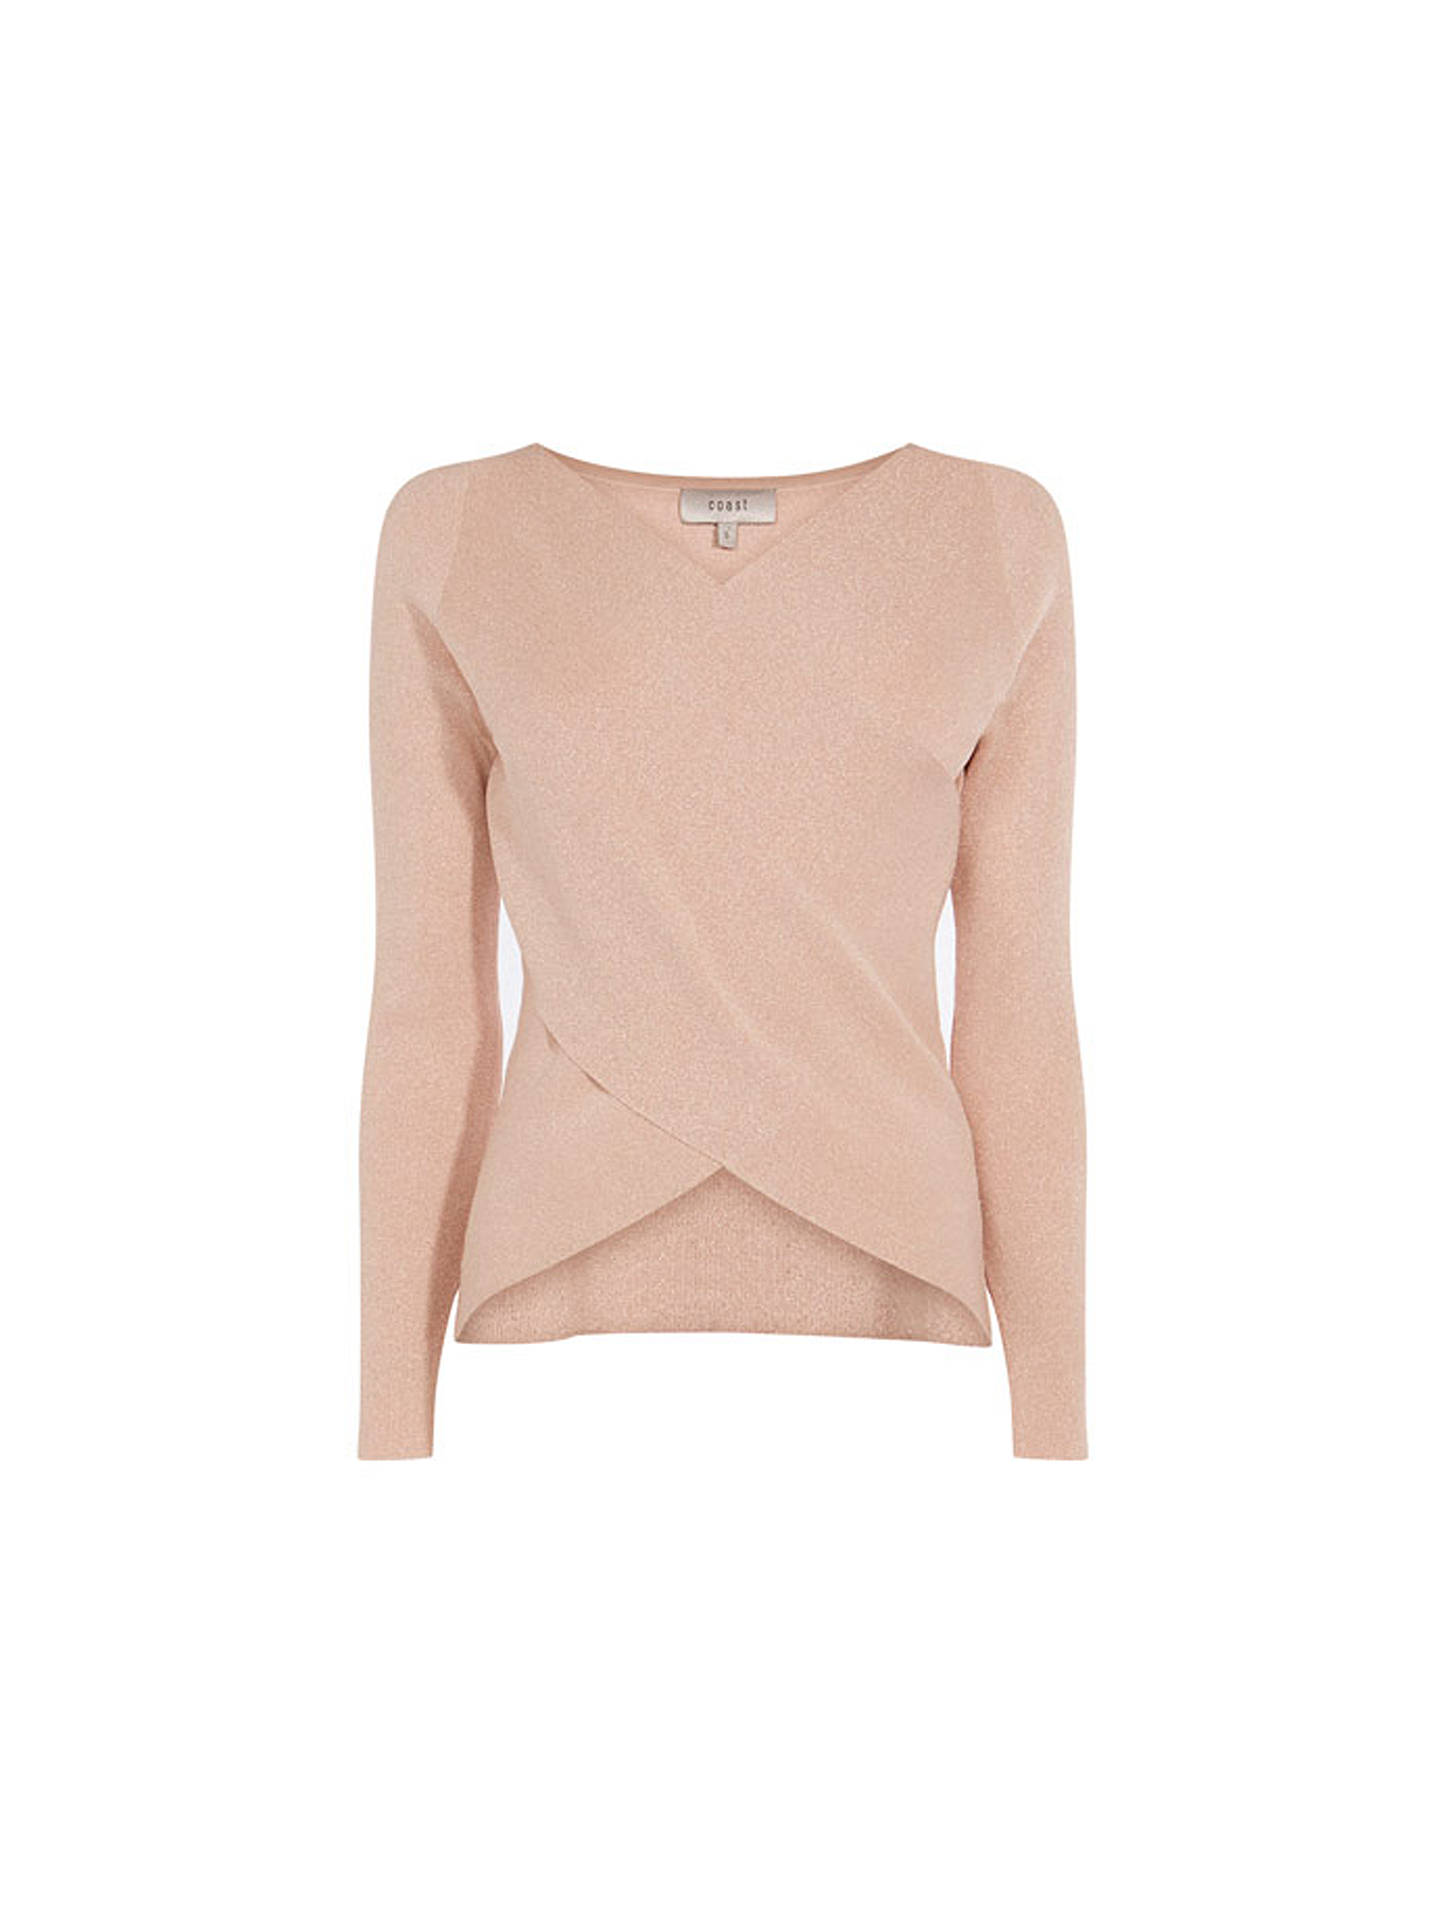 BuyCoast Tiffany Metallic Knit Top, Pink, XS Online at johnlewis.com